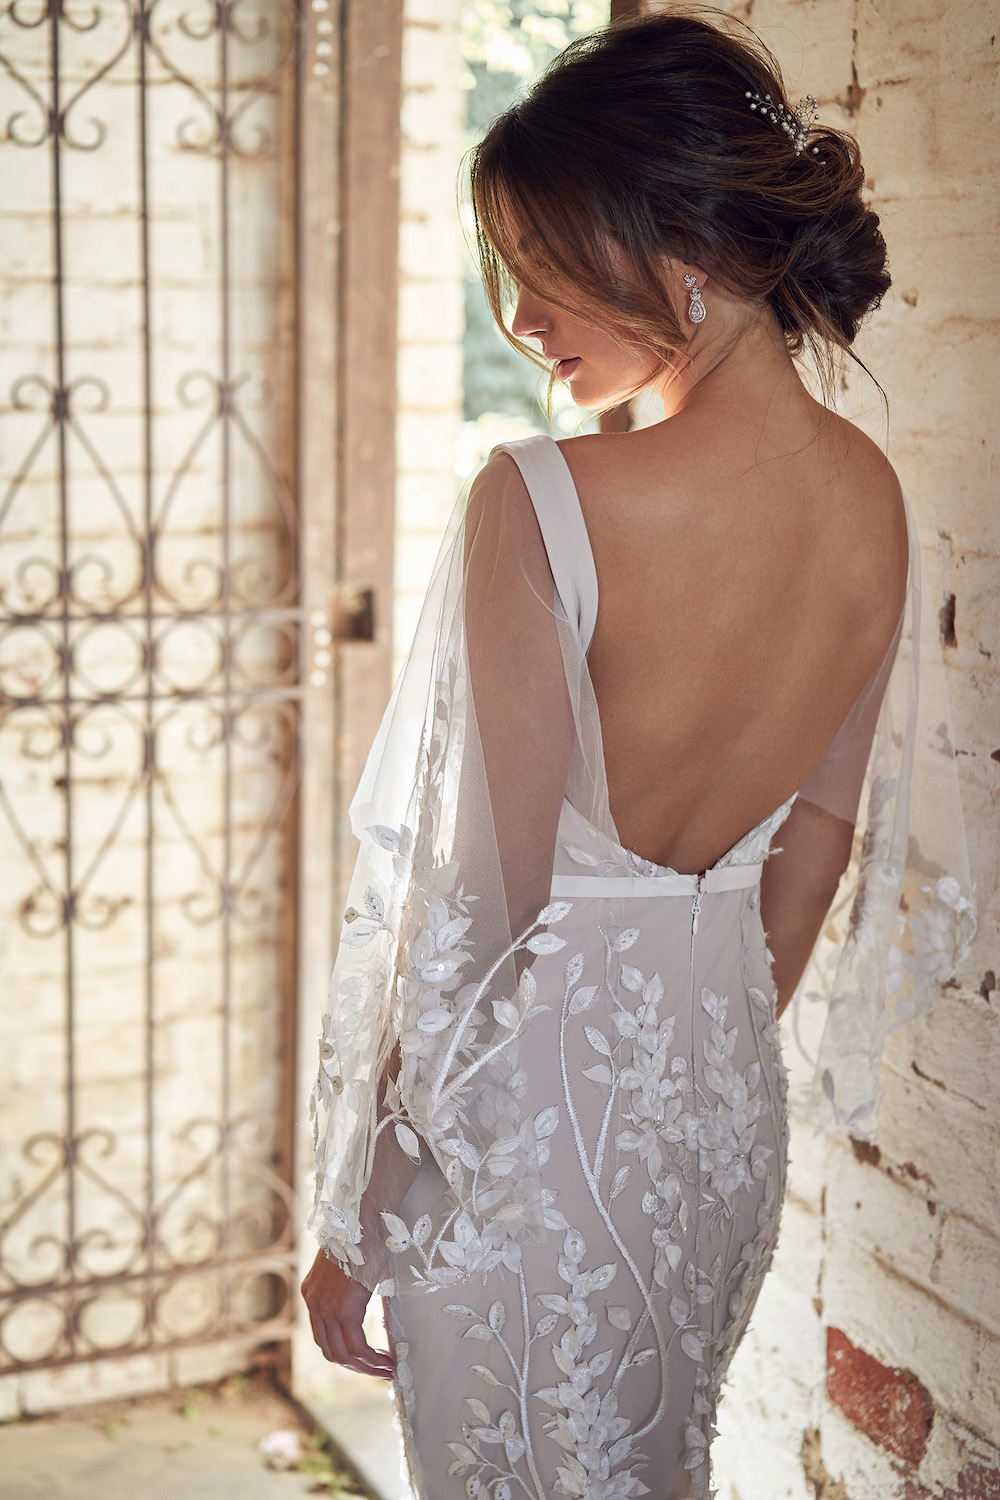 Willow Trumpet bridal dress with draped sleeves | Anna Campbell Lumiere Collection | LOVE FIND CO. Bridal Directory